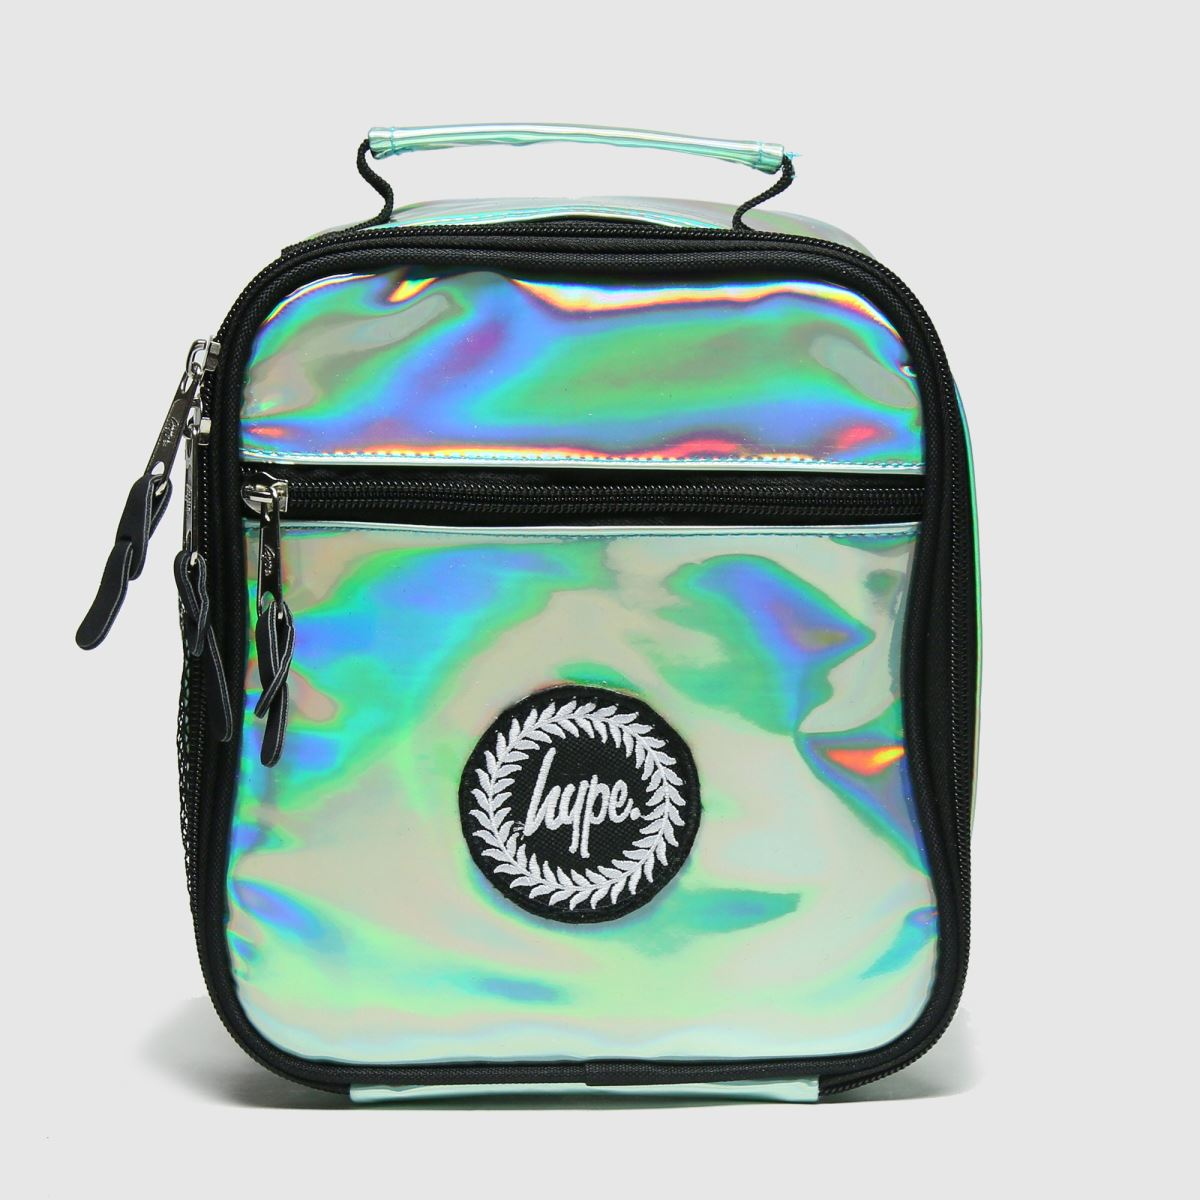 Accessories Hype Turquoise Lunch Bag